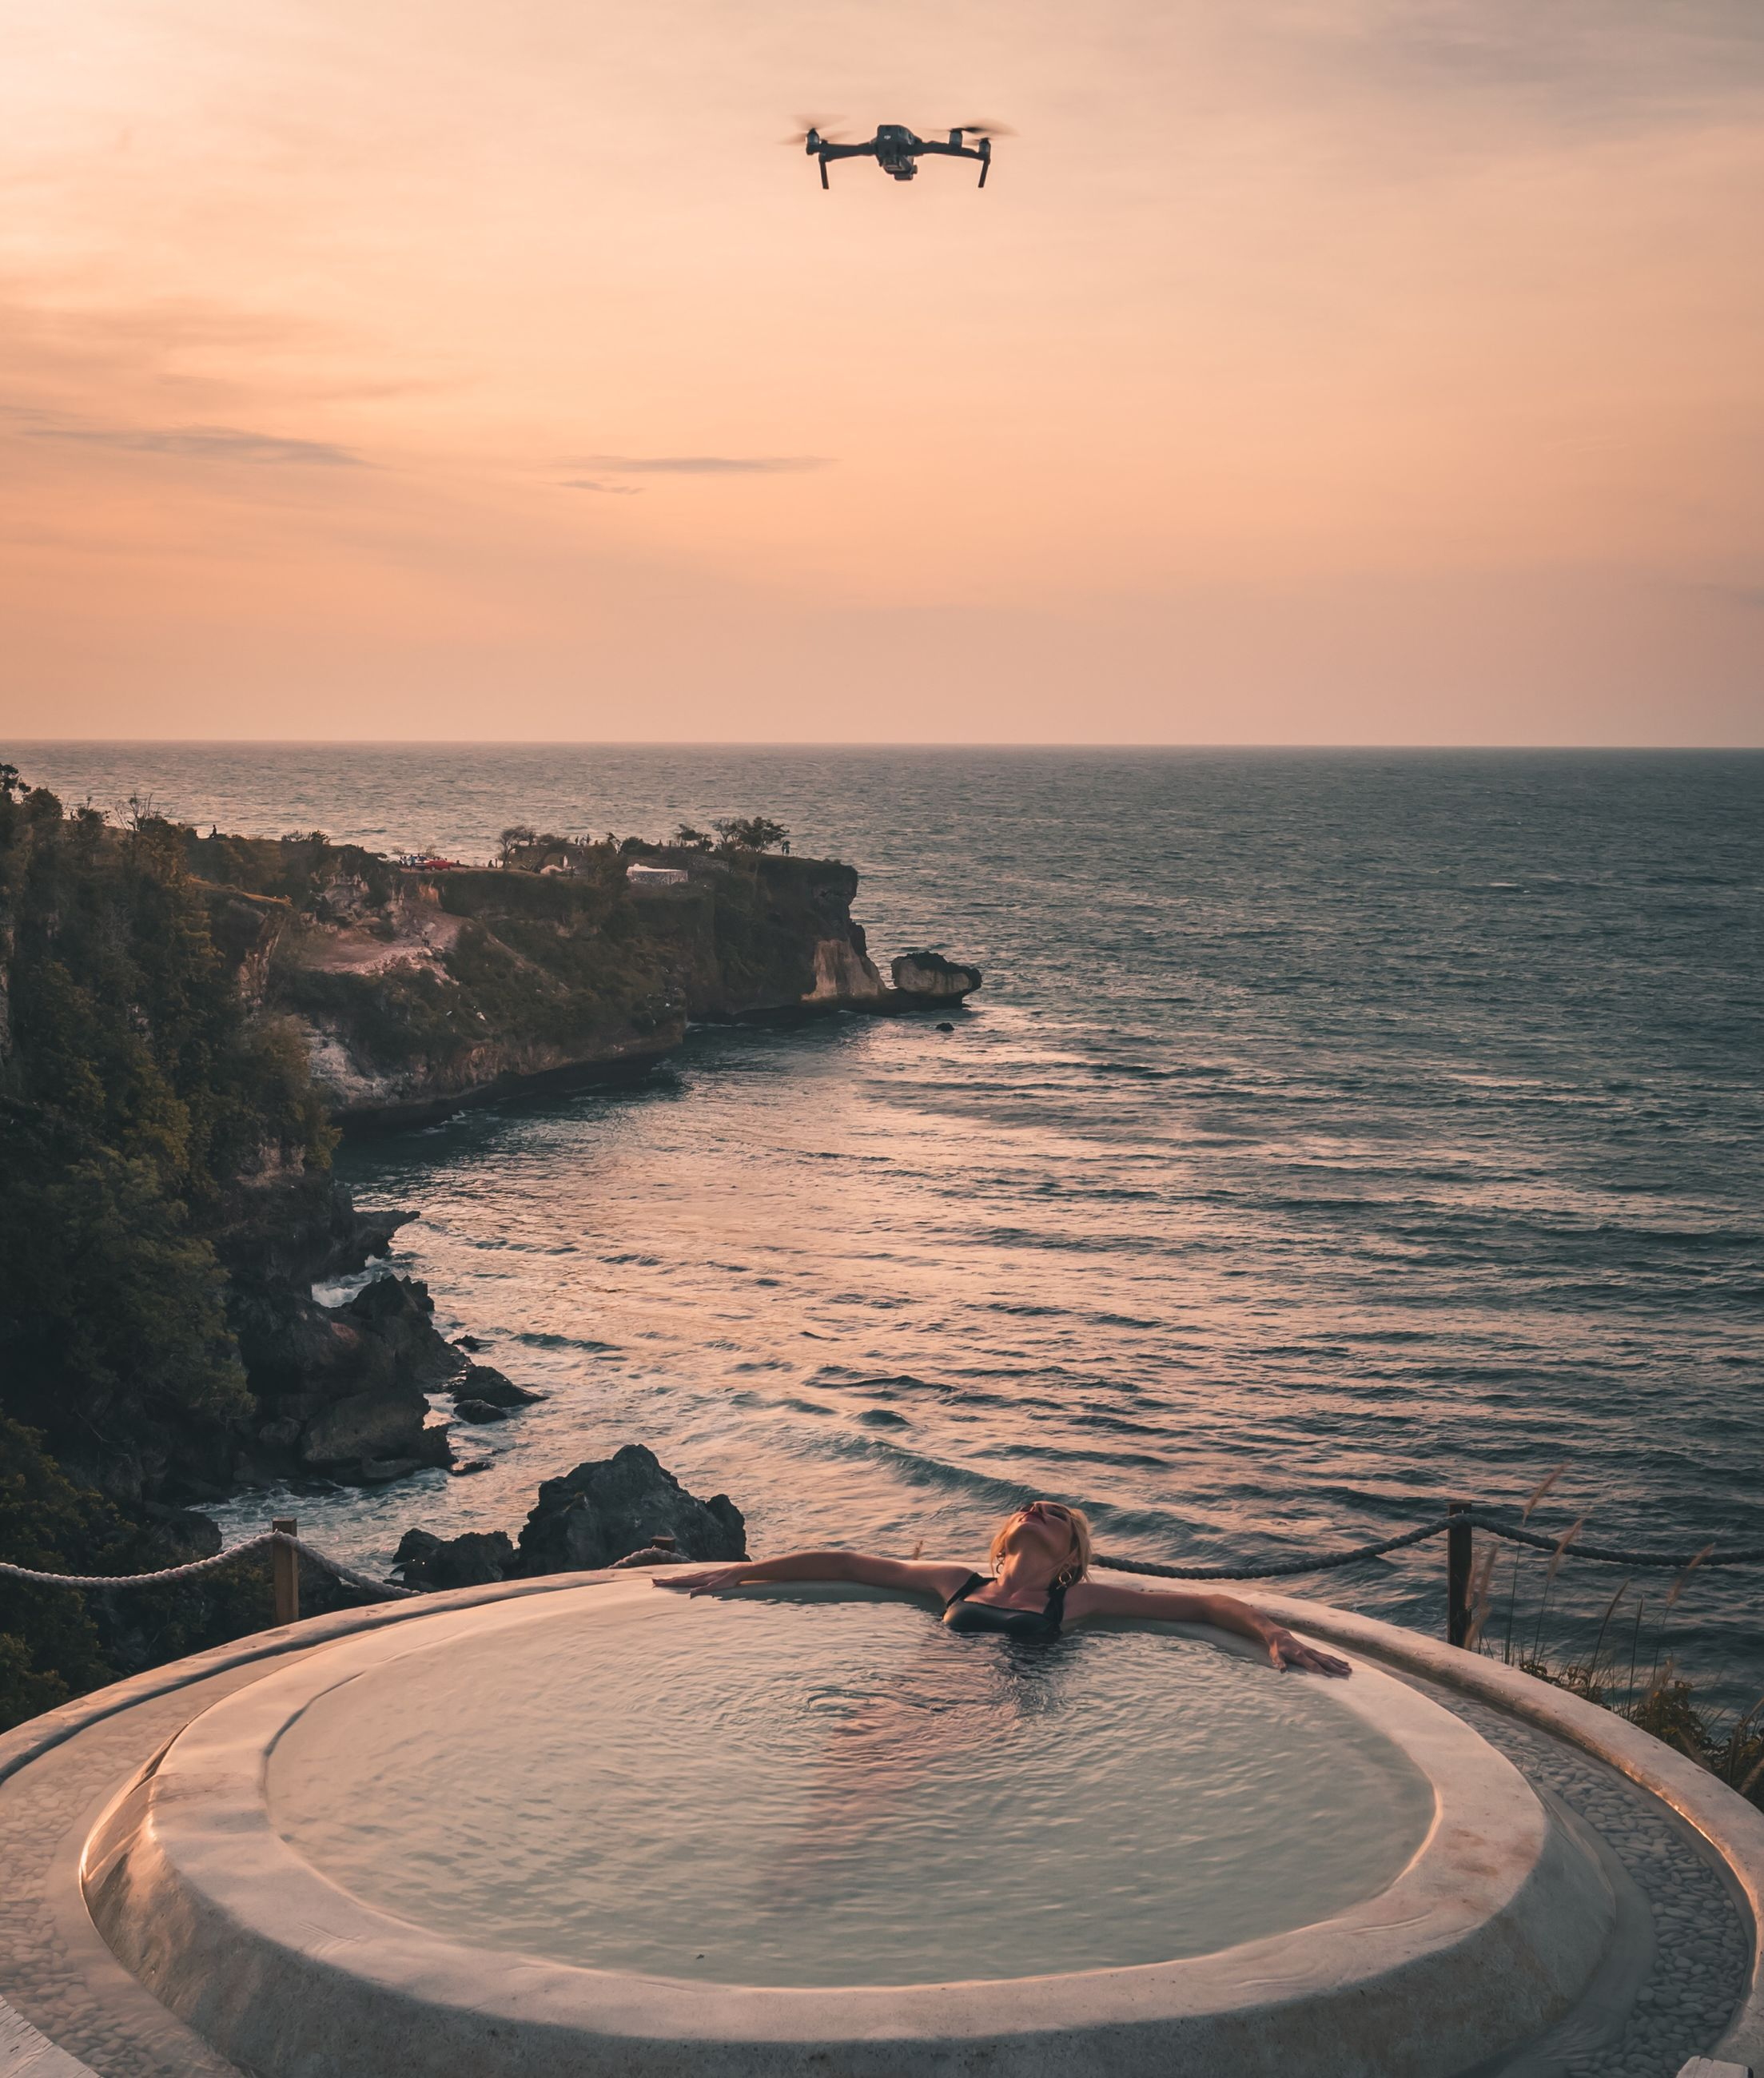 sky, sea, water, horizon over water, sunset, scenics - nature, horizon, beauty in nature, nature, transportation, flying, tranquility, tranquil scene, mode of transportation, no people, air vehicle, orange color, airplane, cloud - sky, outdoors